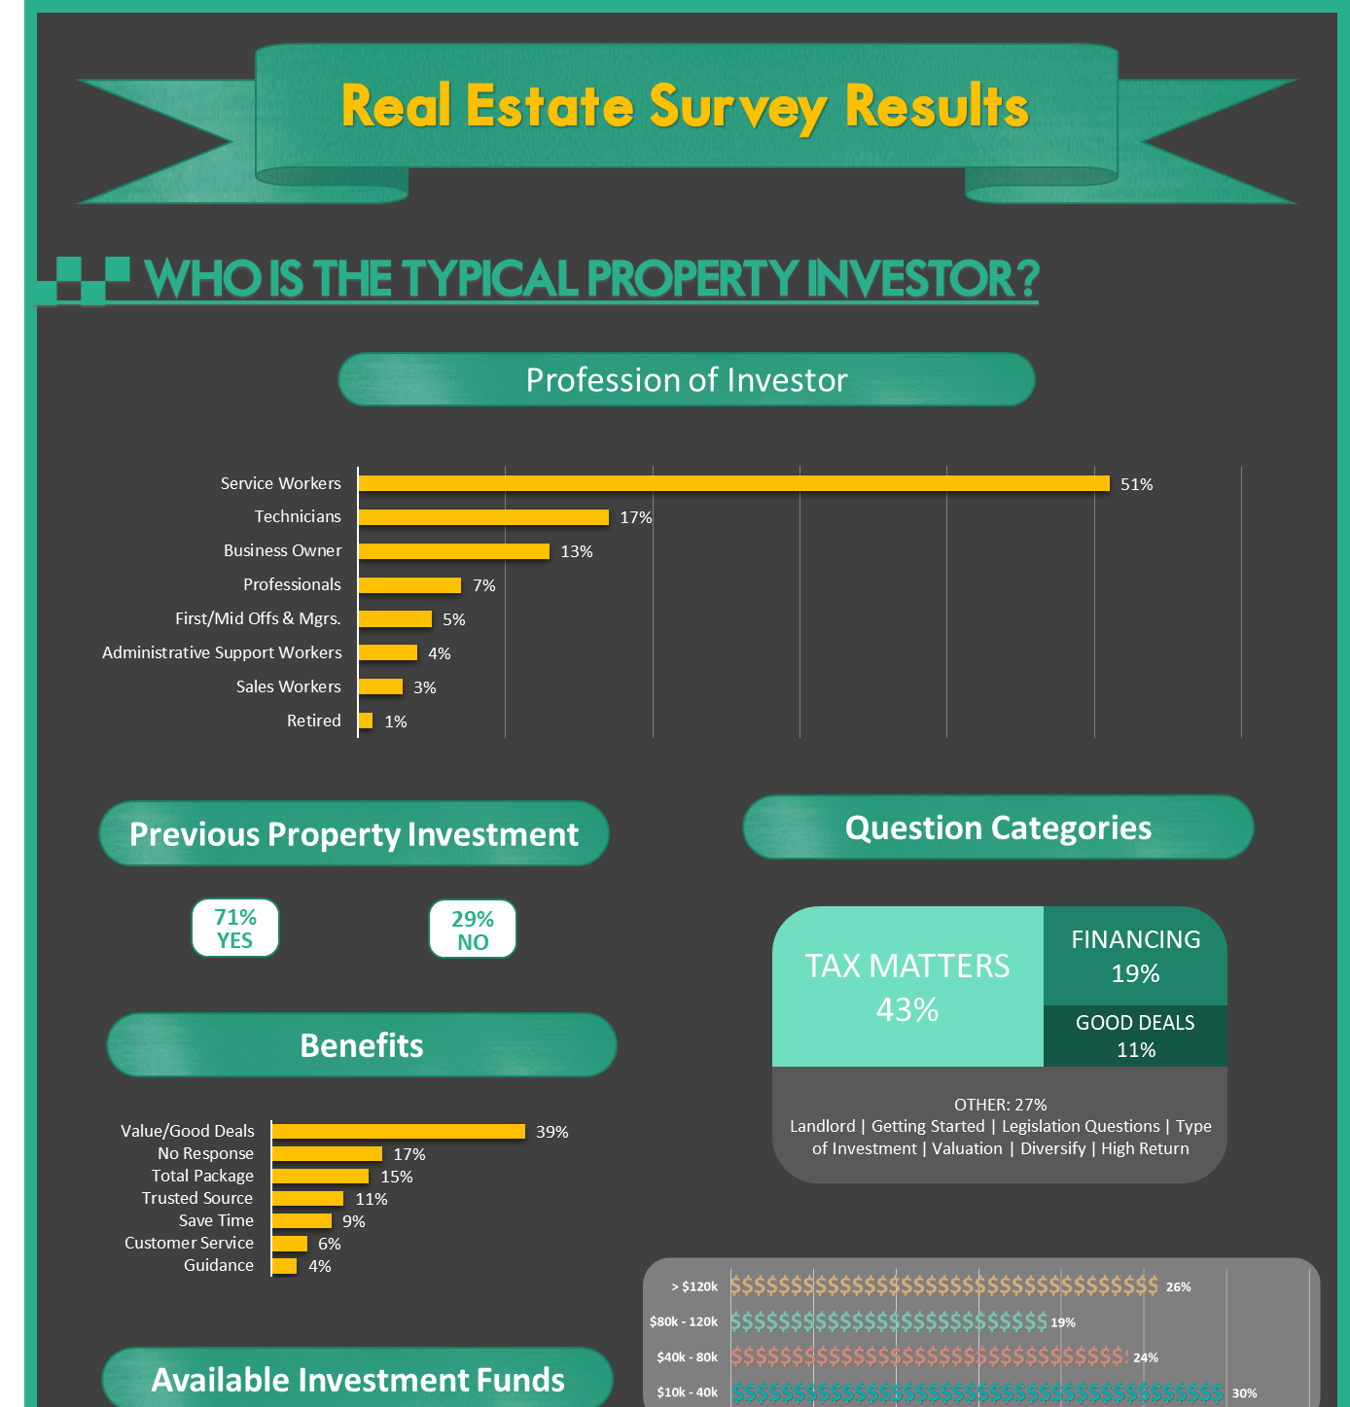 PROPERTY INFO GRAPHIC ABBRV